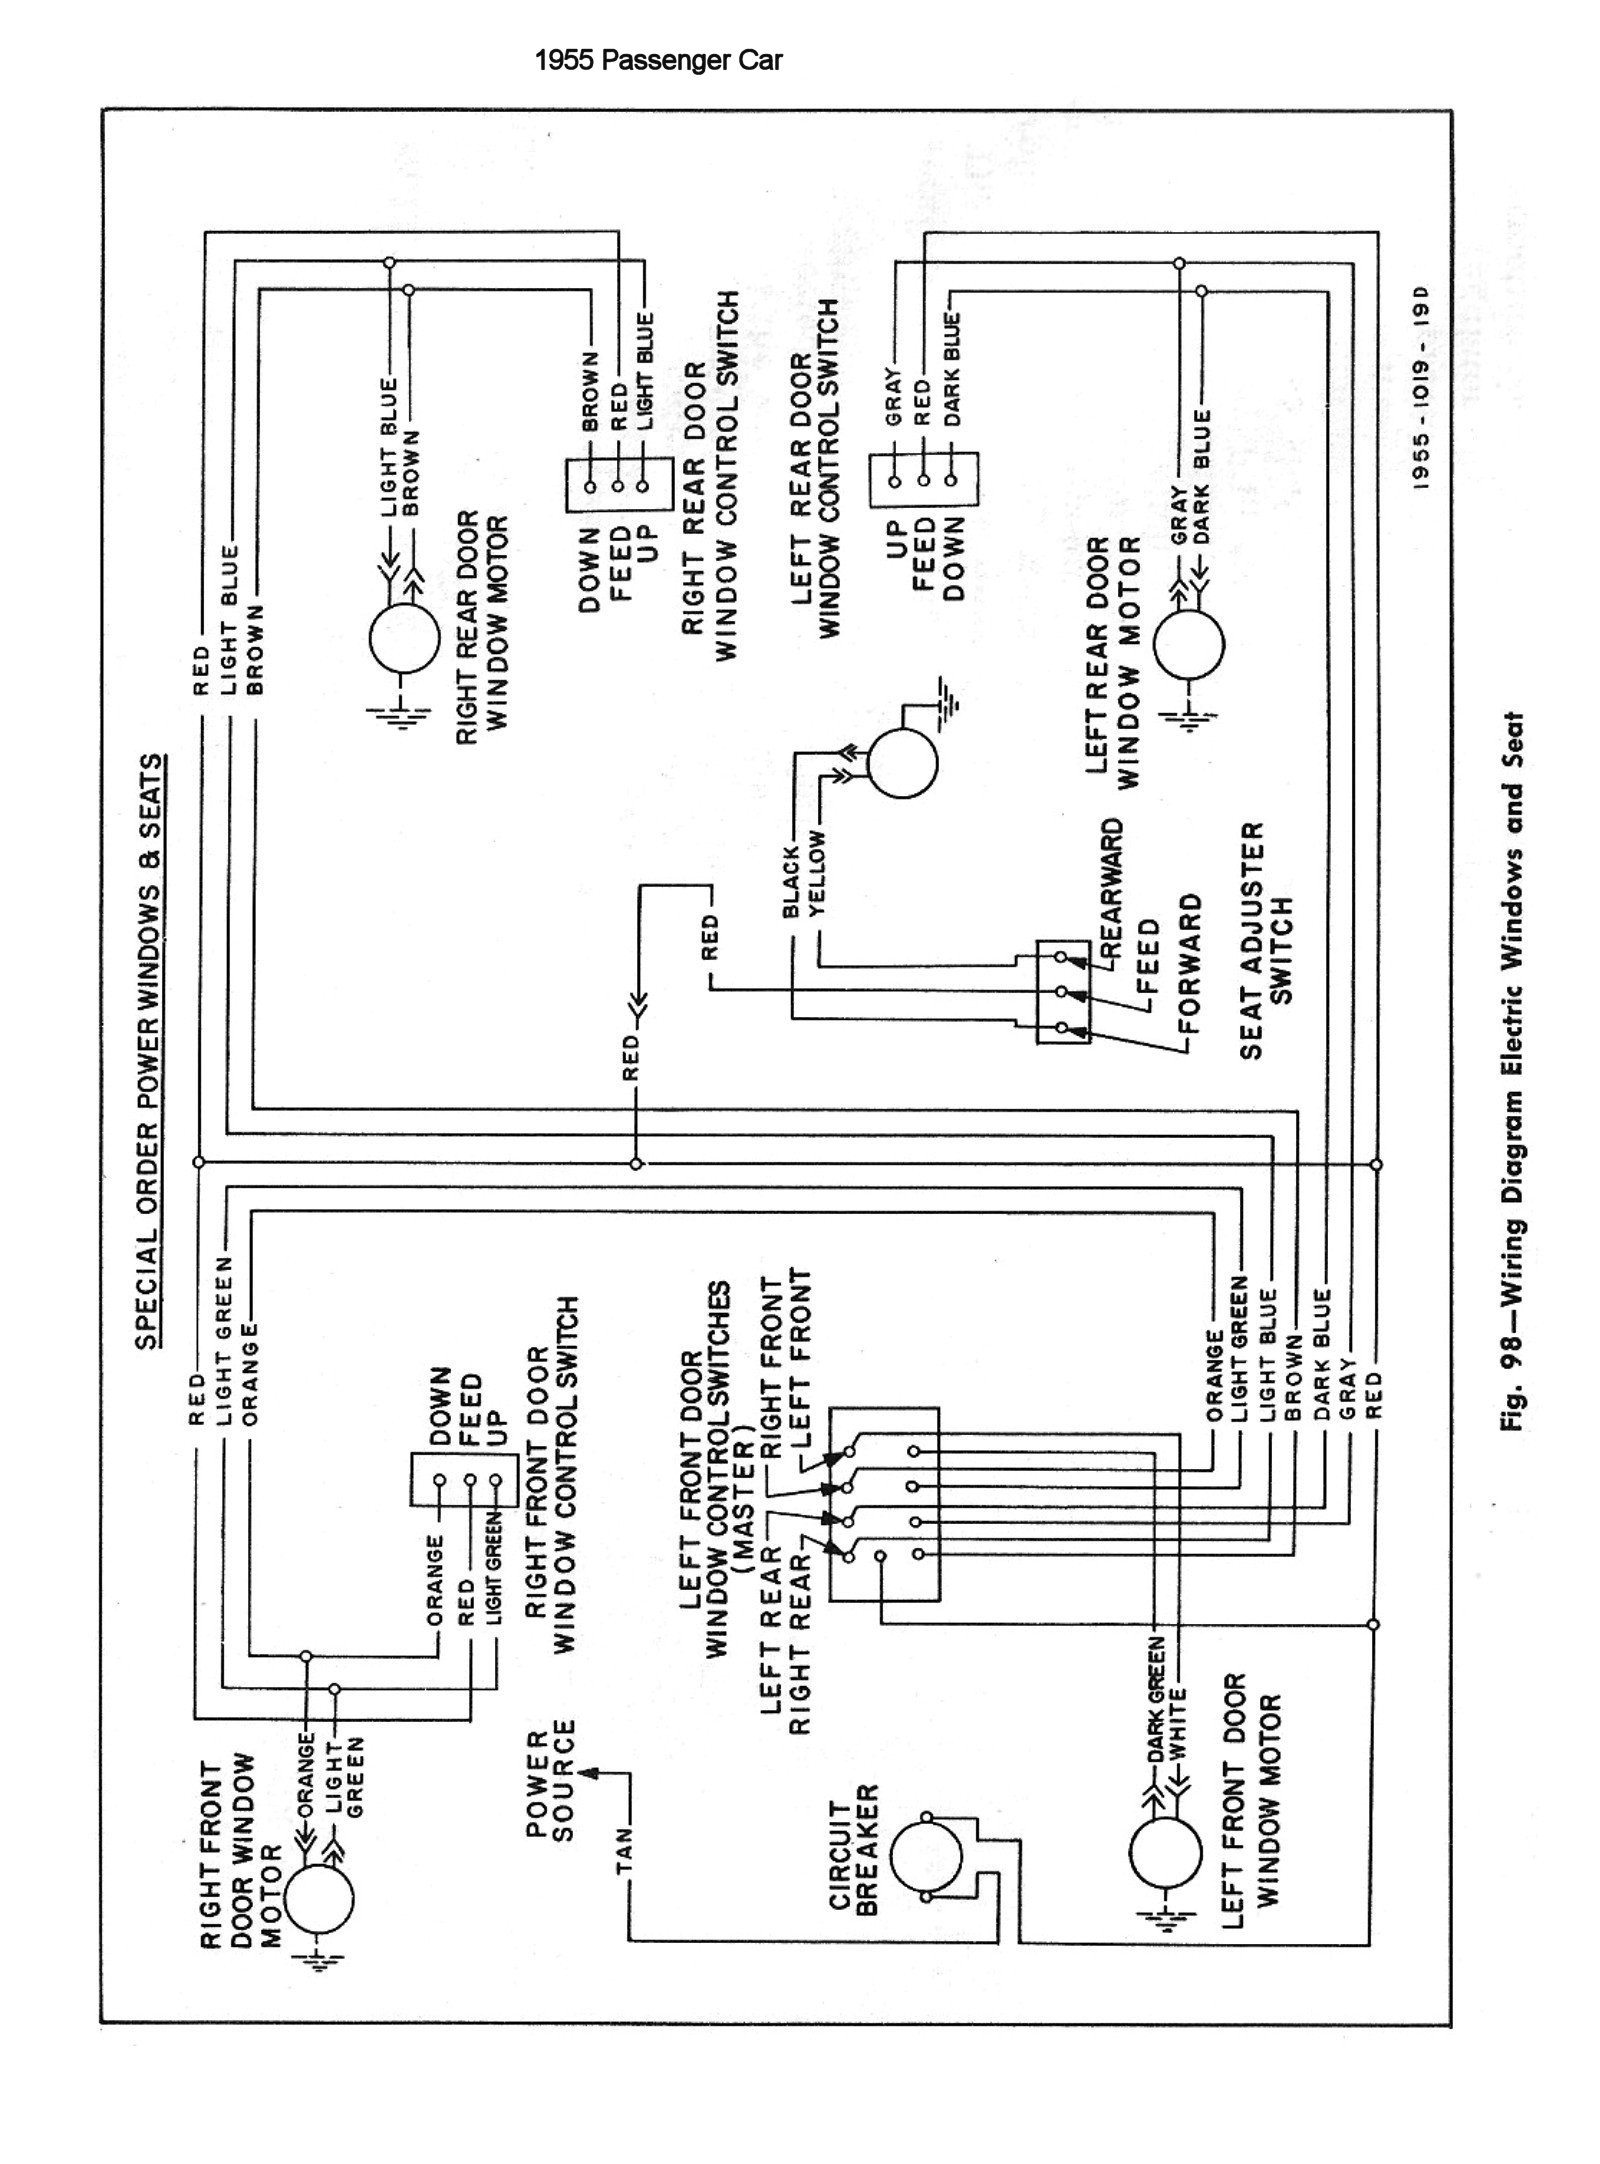 Chevy Spark Plug Wiring Diagram